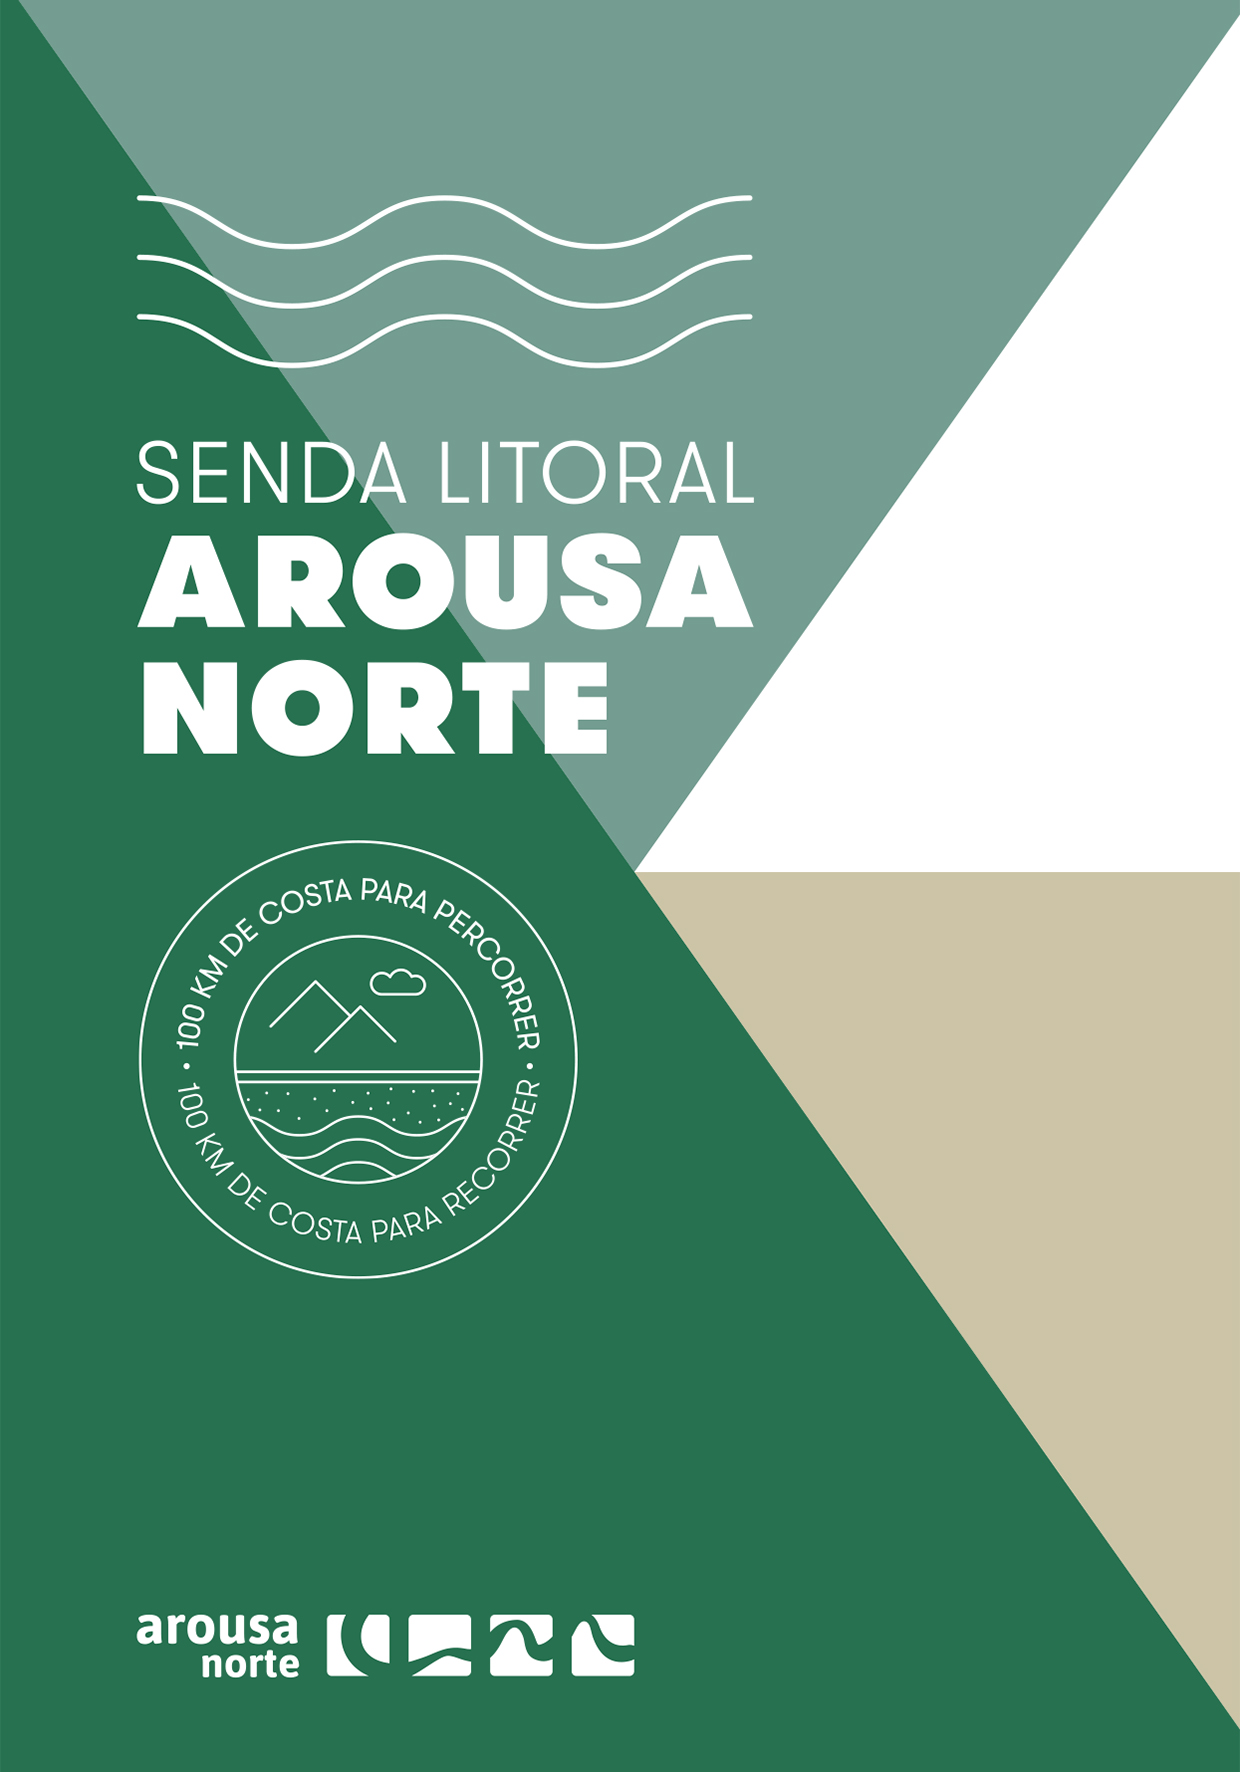 Folleto Senda Litoral Arousa Norte